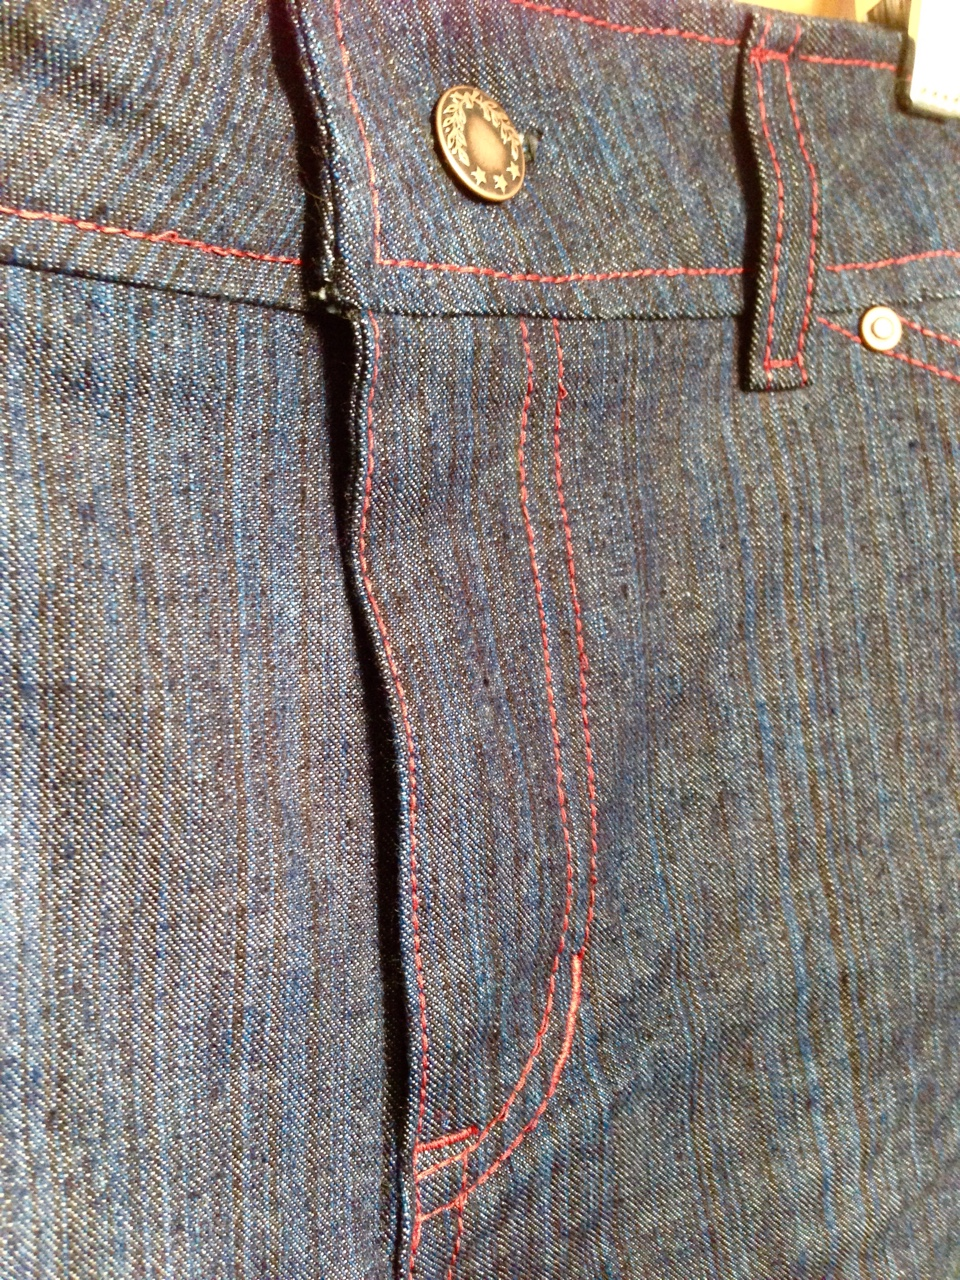 Jeans fly detail